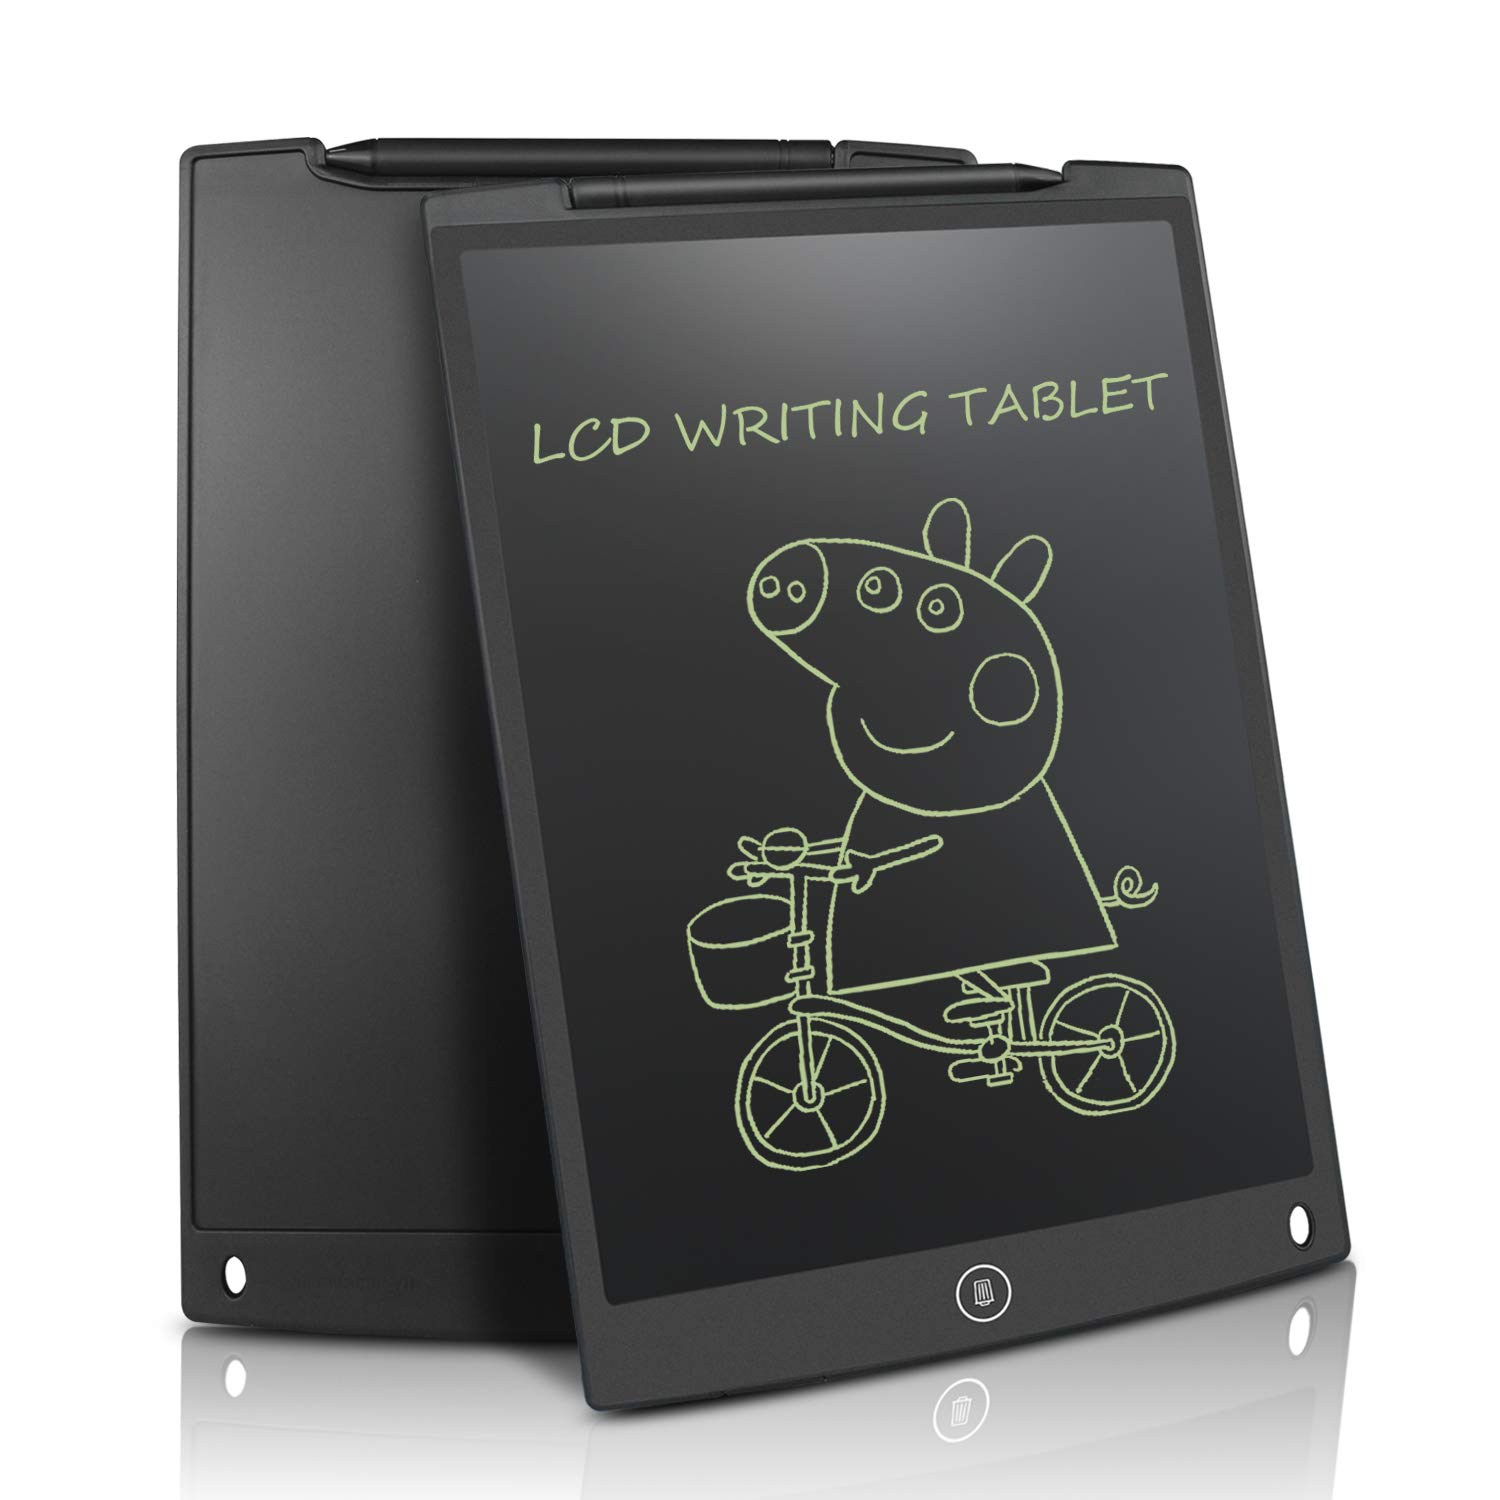 LCD Writing Tablet 12 Inch - HOMESTEC Drawing Board Gifts for Kids Office Writing Memo Board (Black) NYWB12-BL